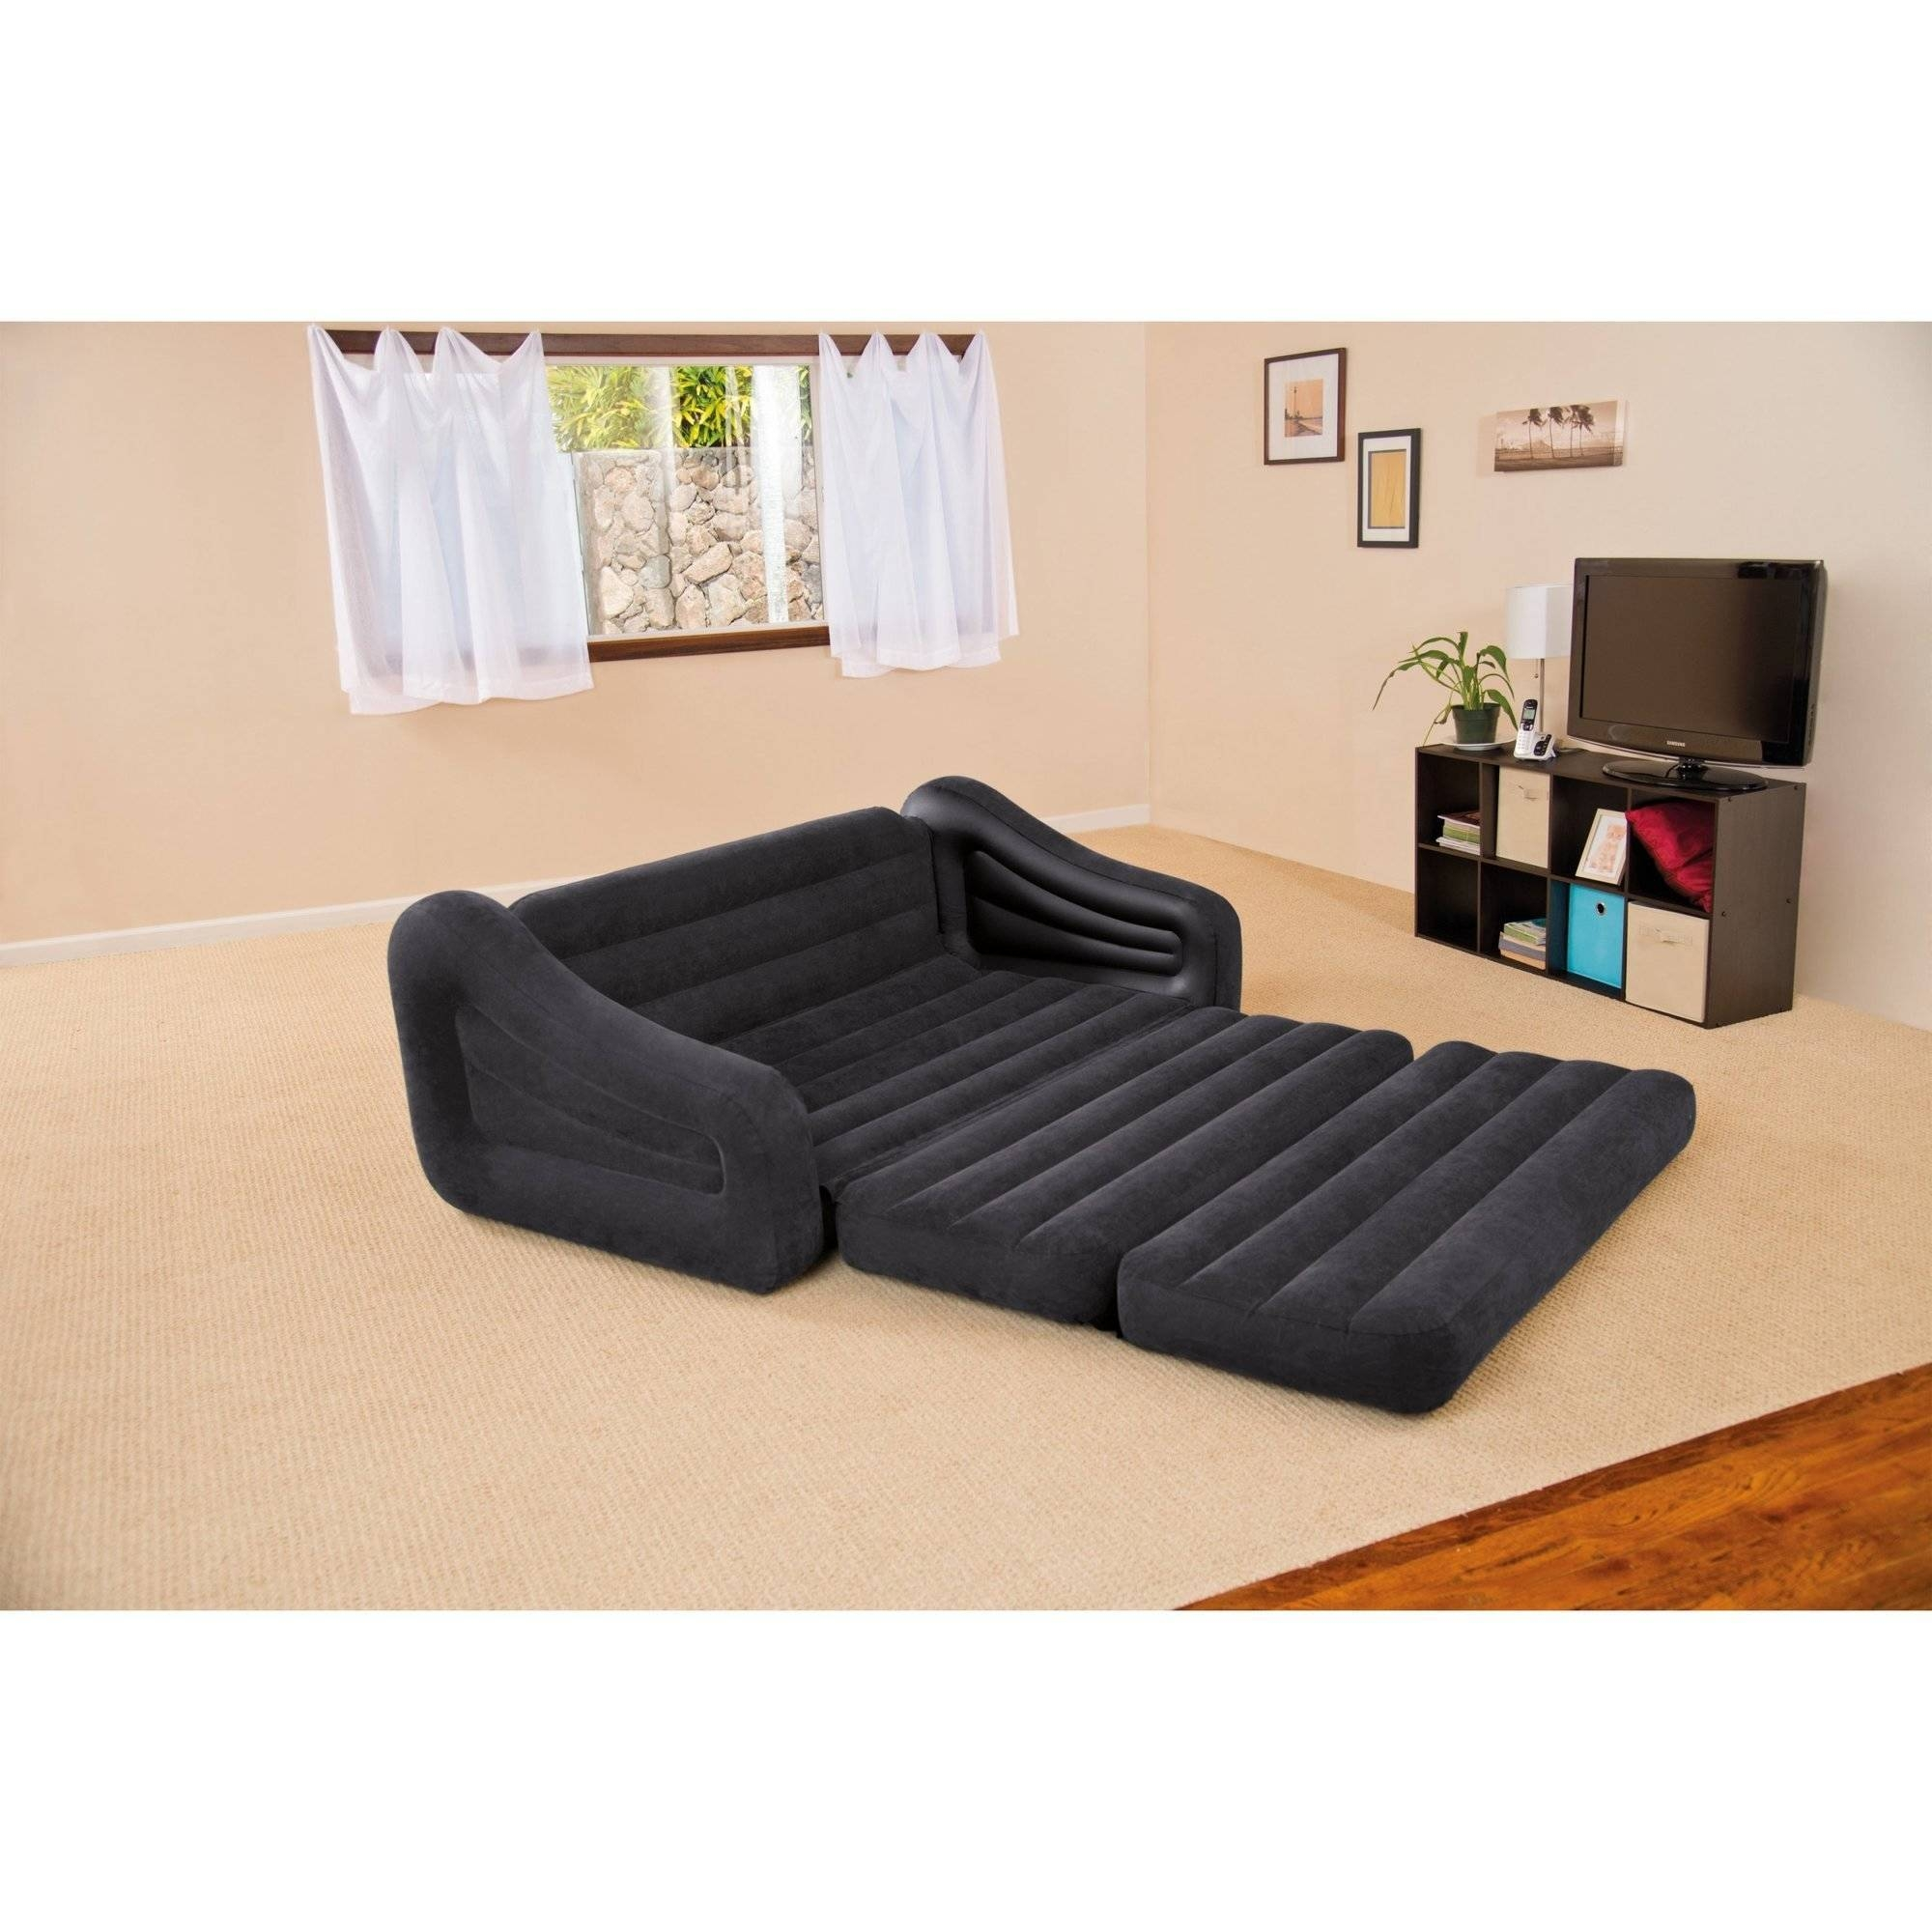 Intex Queen Inflatable Pull Out Sofa Bed - Walmart in Intex Sleep Sofas (Image 11 of 15)